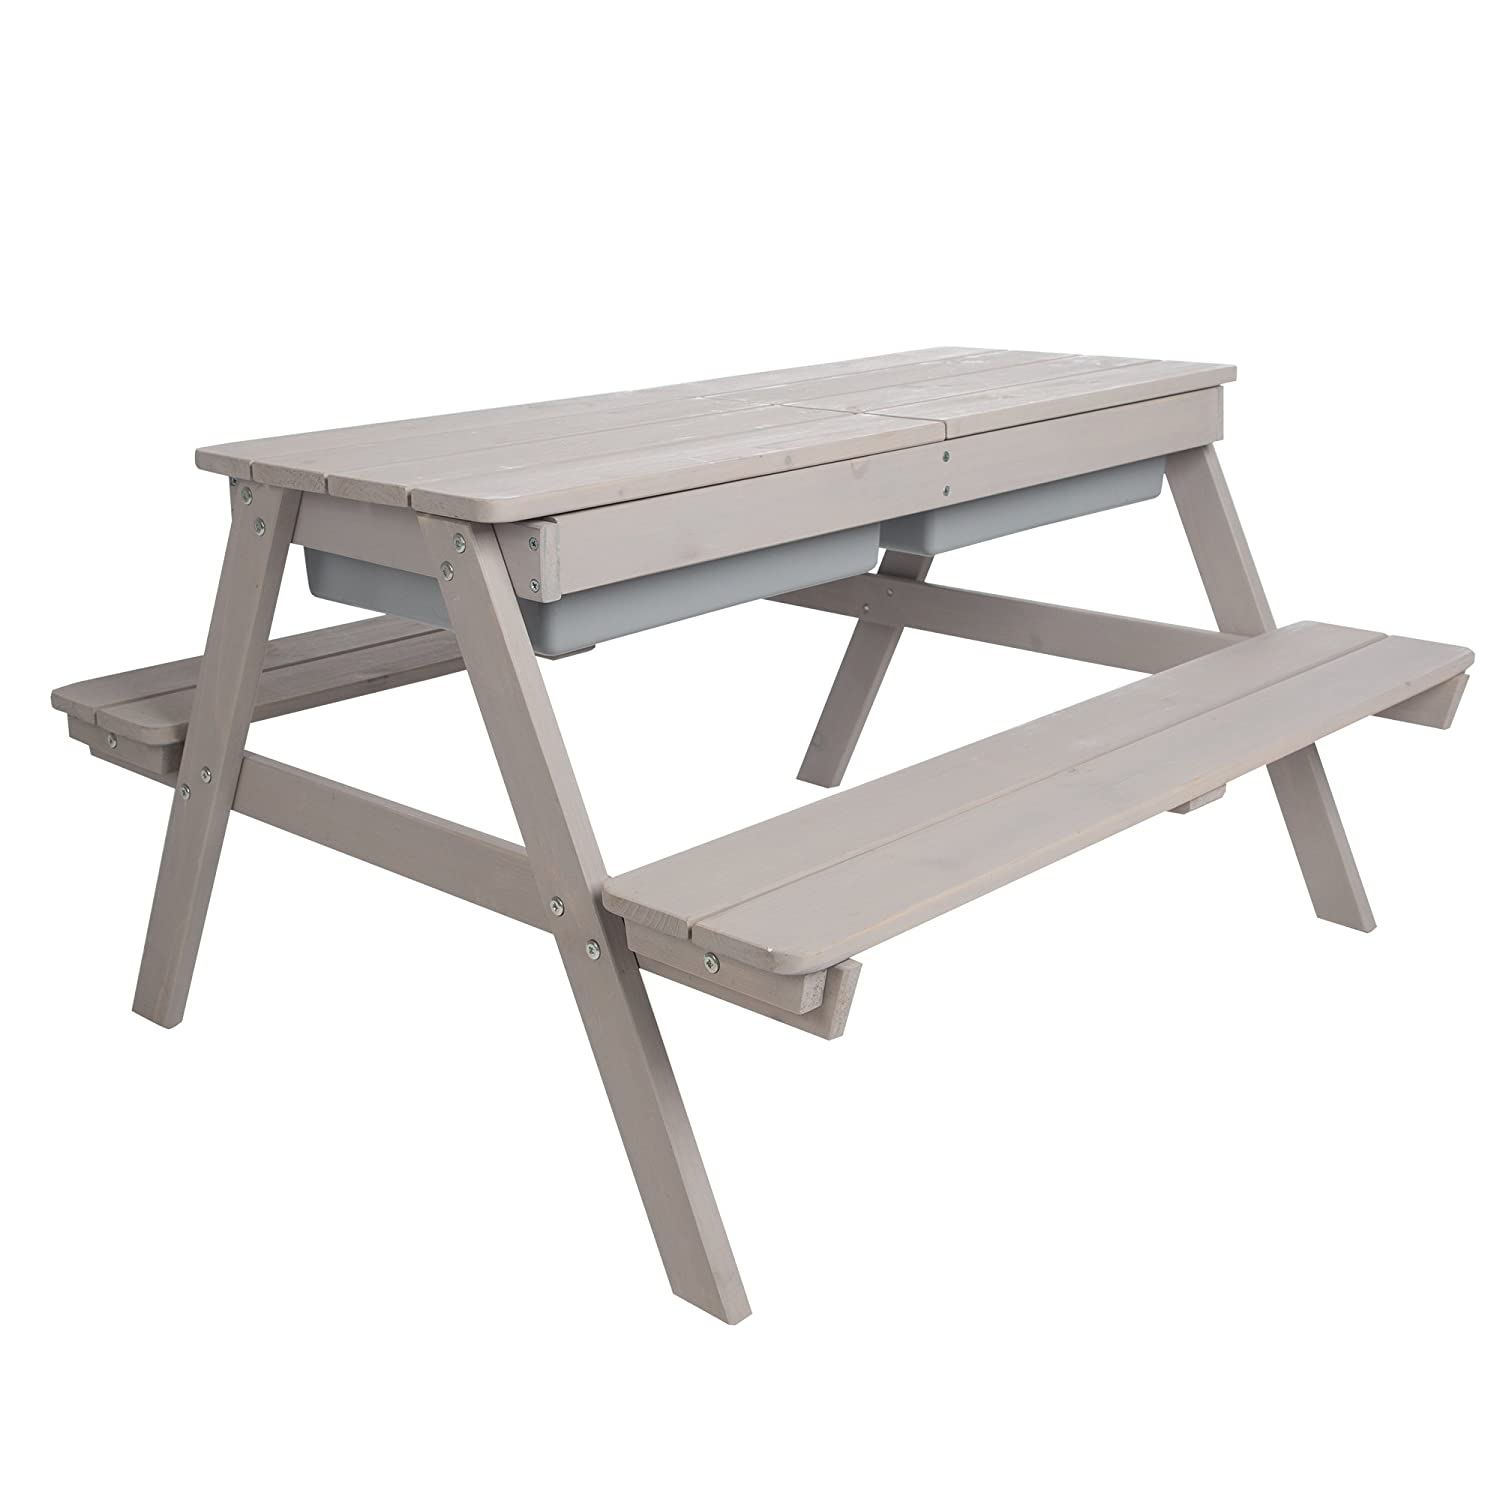 Roba Children S Outdoor Play For 4 Chairs Mud Table Wooden Table